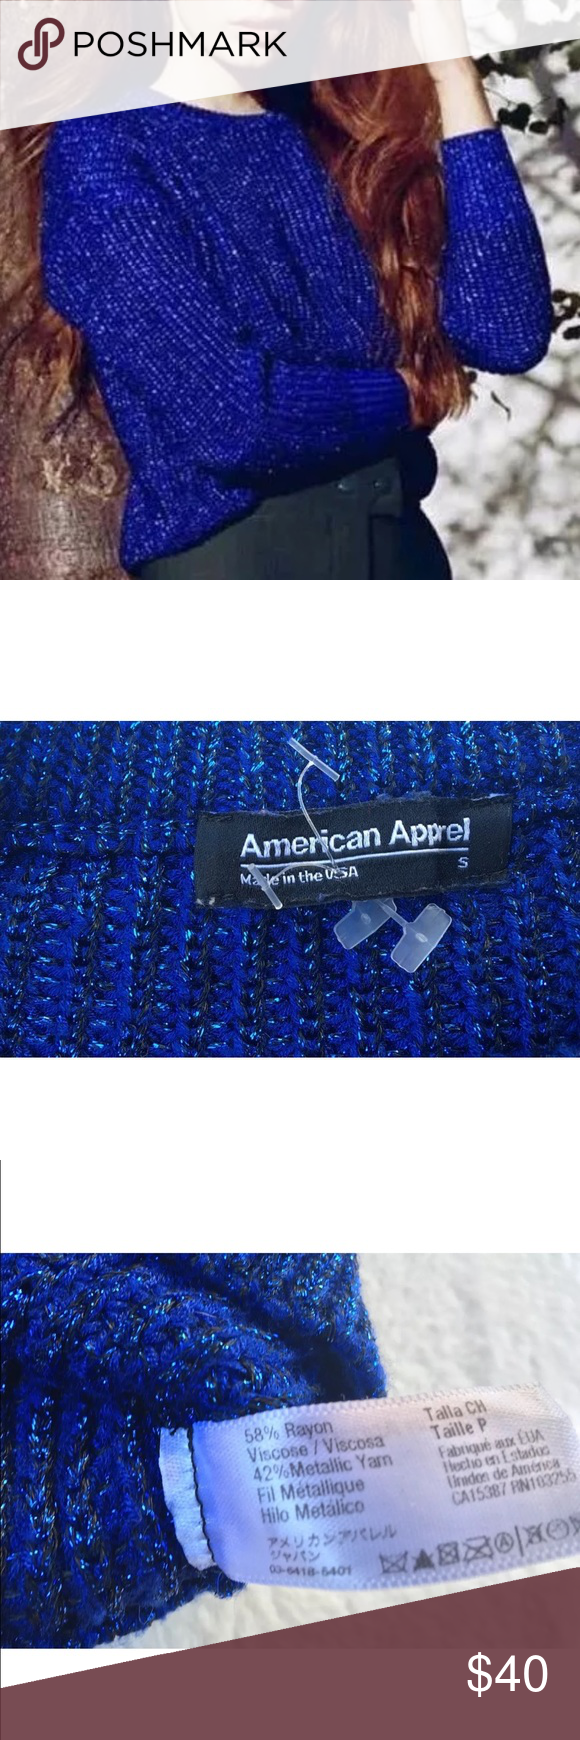 NEW American Apparel metallic pullover sweater New without tags. American Apparel Blue Metallic Fisherman's Pullover Chunky Knit Sweater. There was a small tear at the shoulder hem that was restitched- not noticeable and does not affect function at all- refer to last picture. Size Small. American Apparel Sweaters